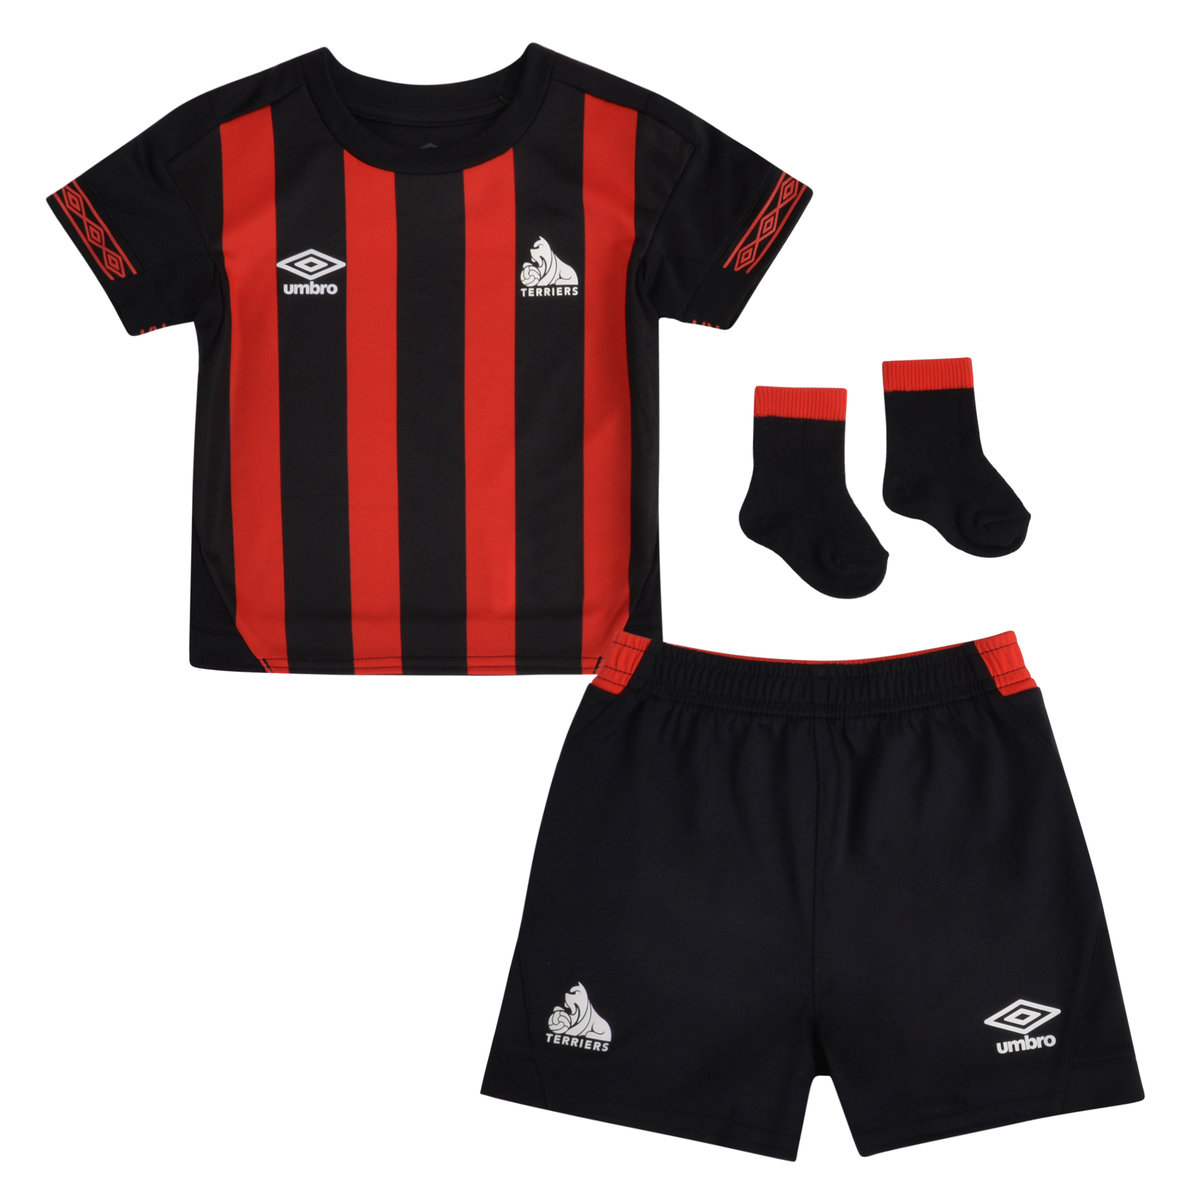 HUDDERSFIELD TOWN 18/19 AWAY BABY KIT